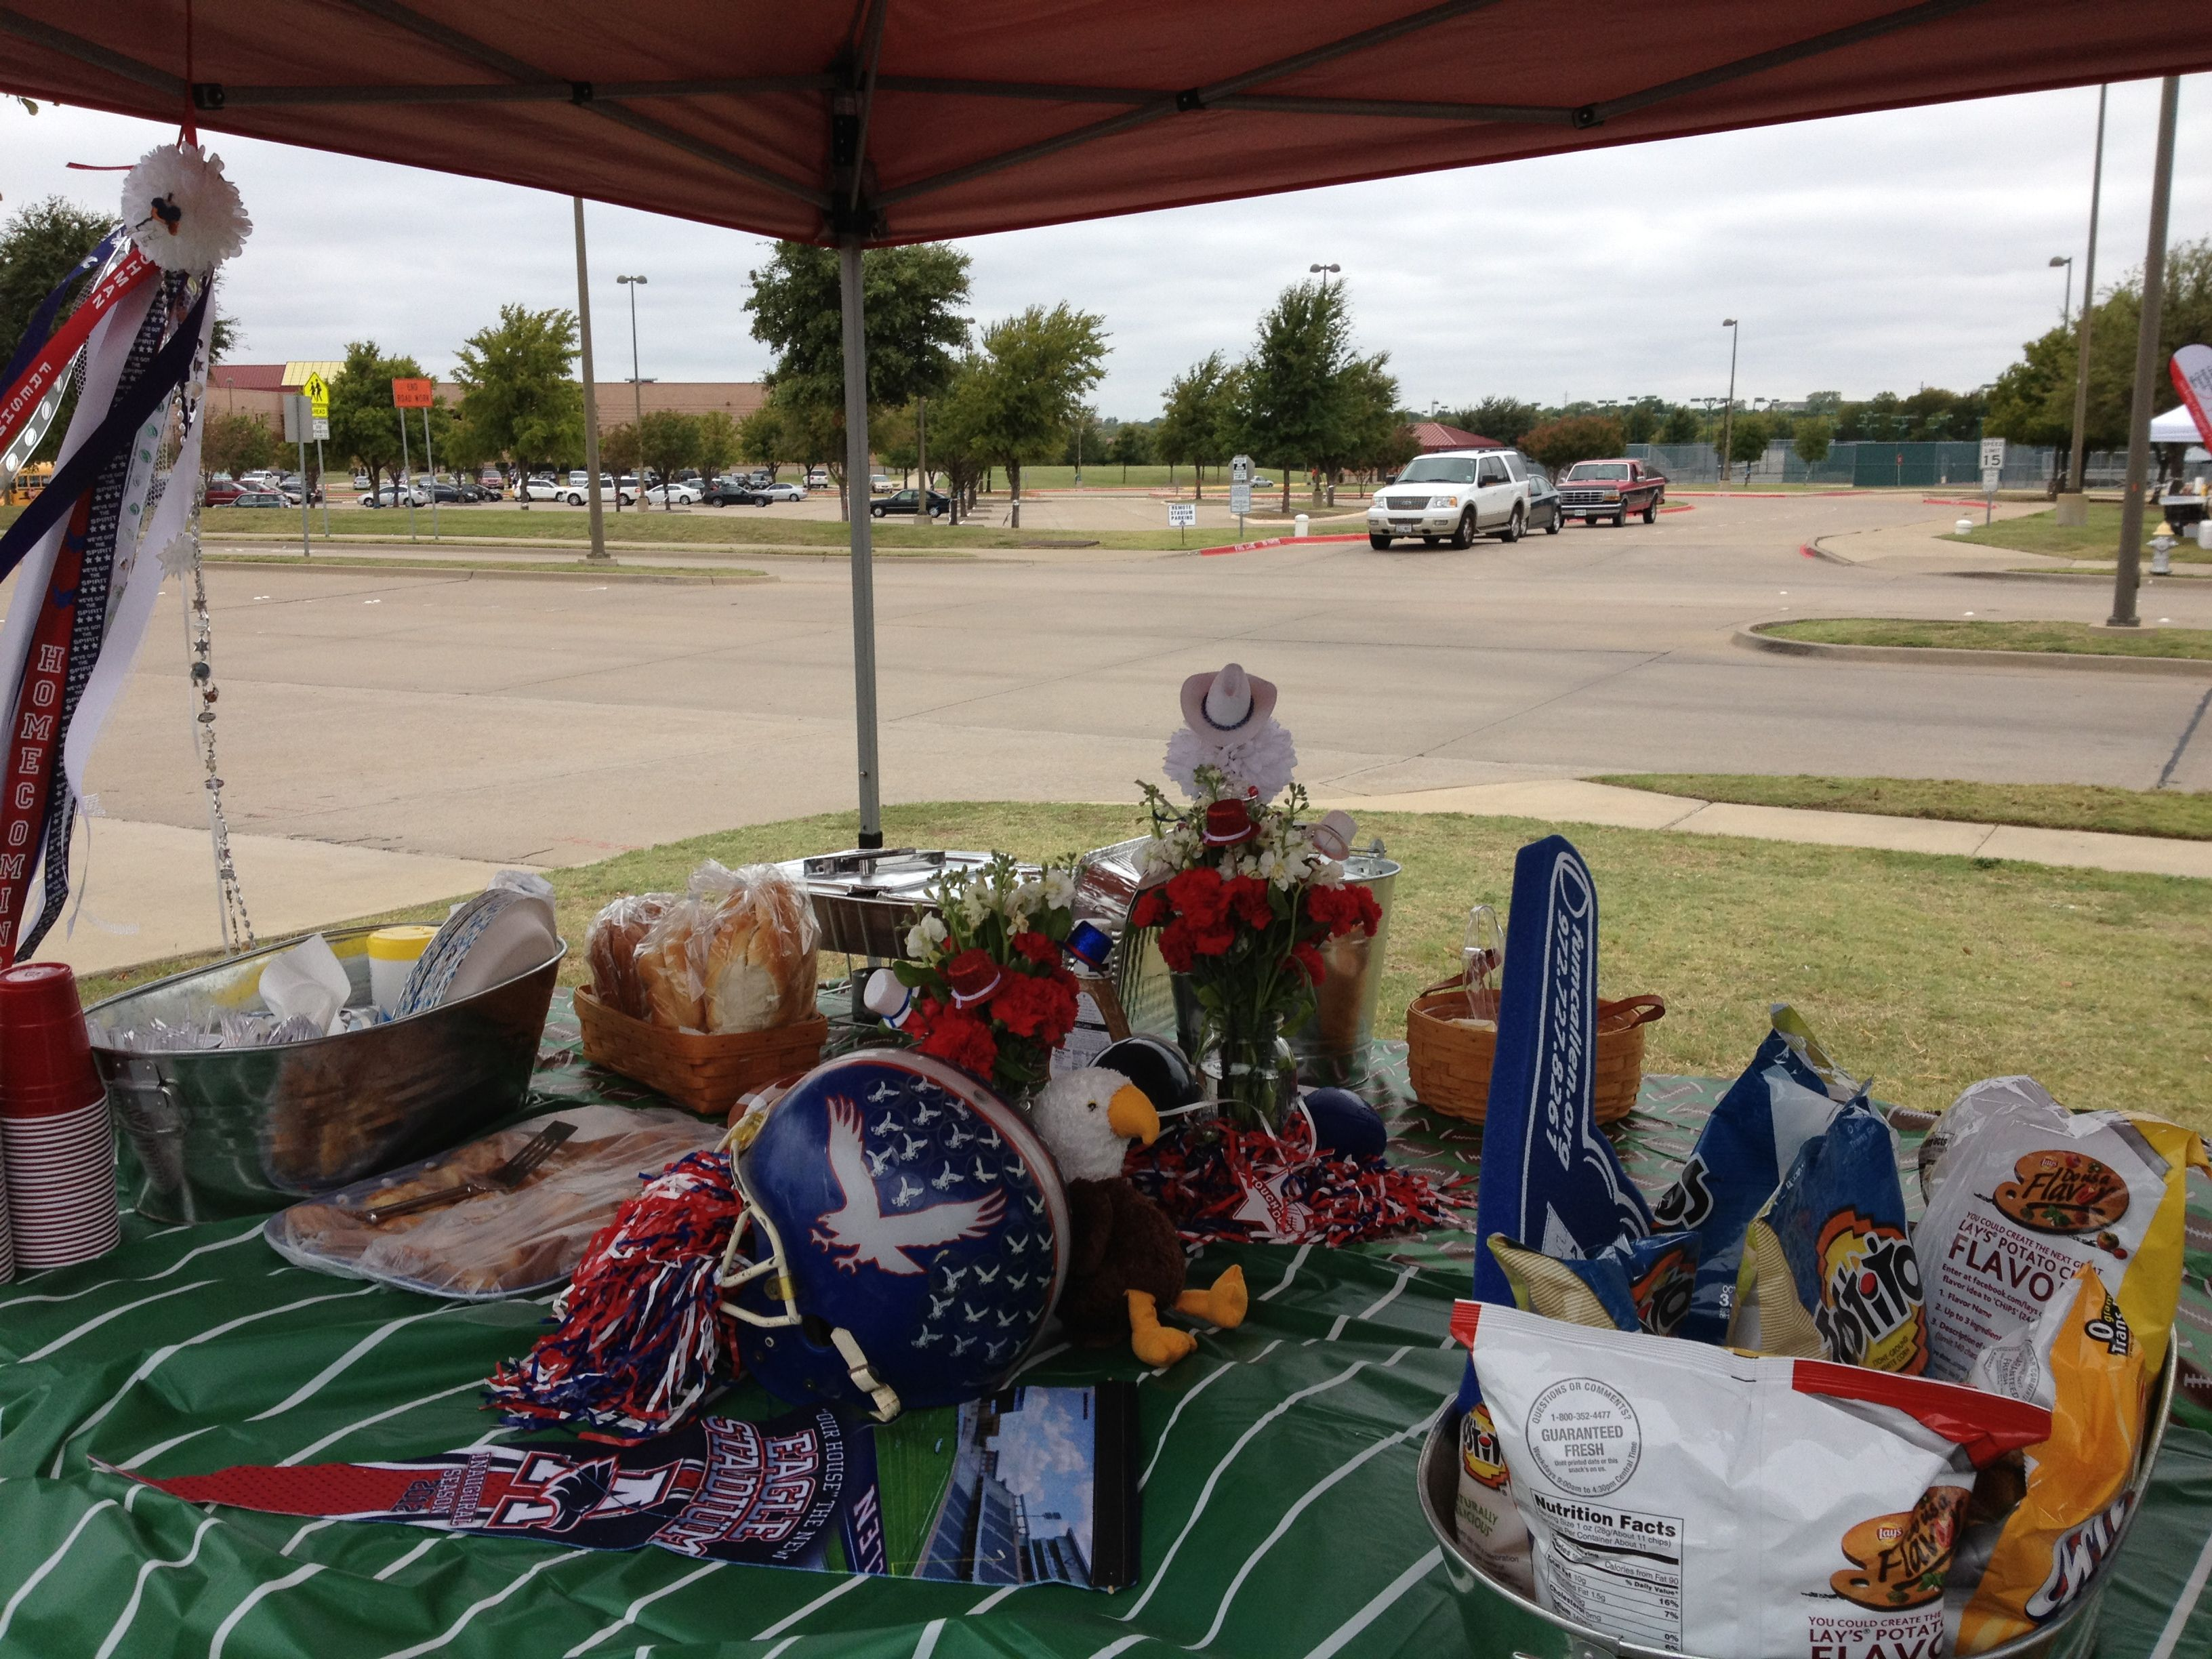 Homecoming tailgate decor for allen high school tailgating allen homecoming tailgate decor for allen high school arubaitofo Image collections